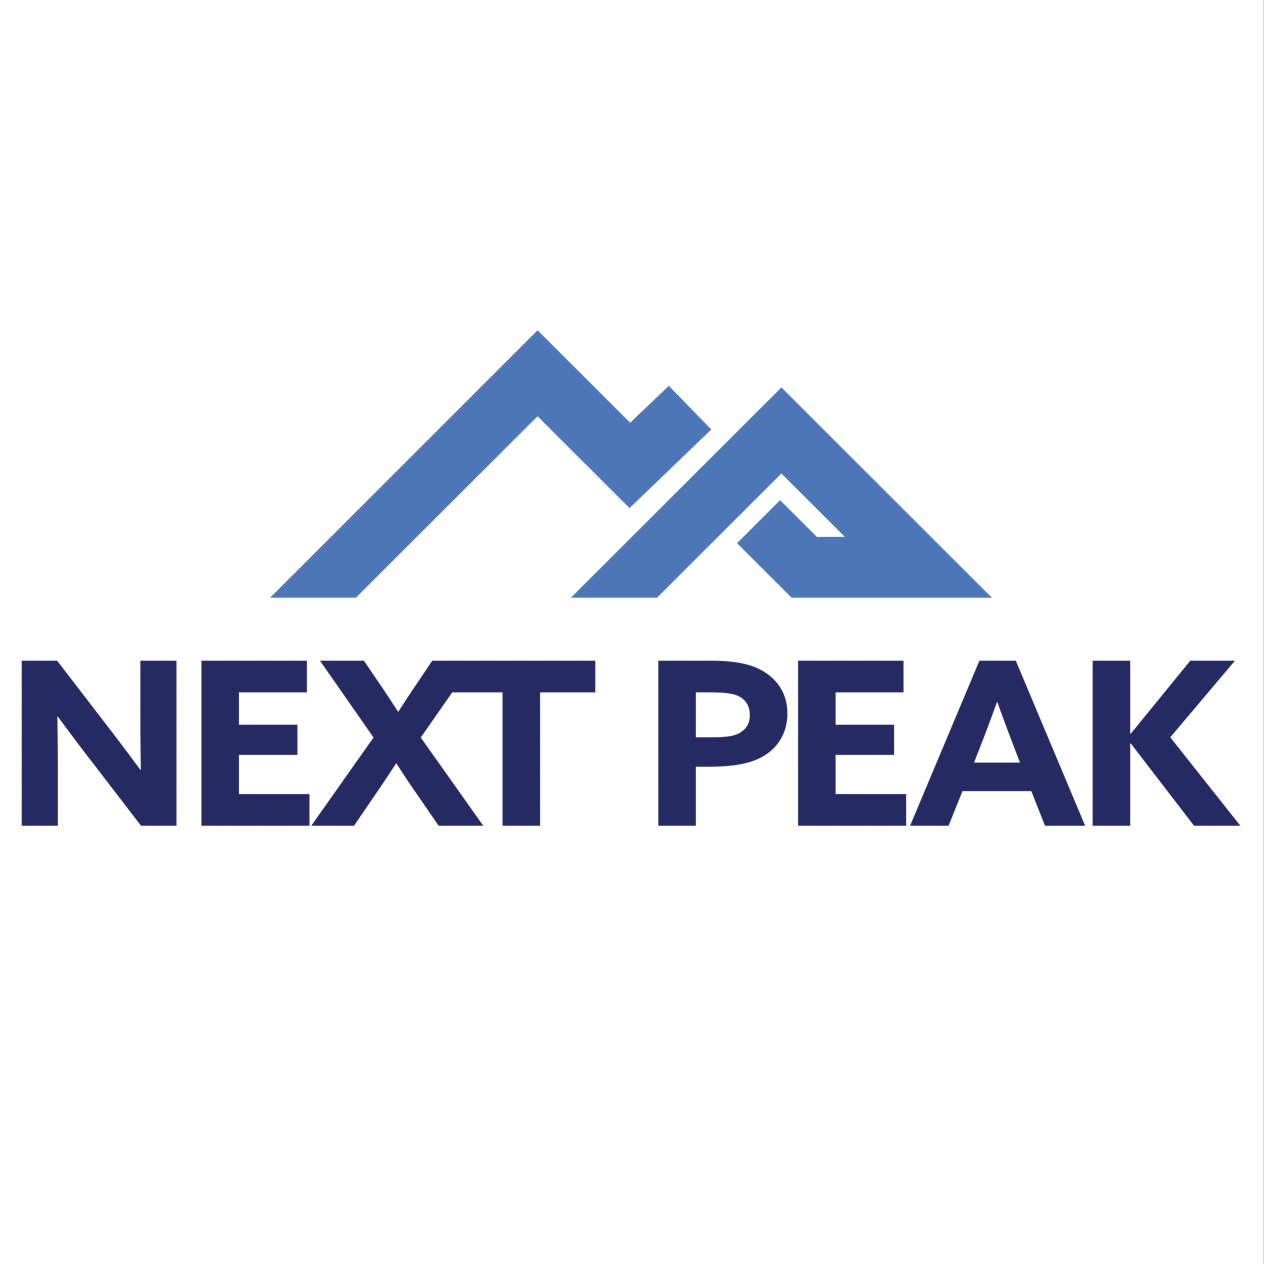 Press Release: Next Peak Welcomes John Bansemer and Jaci Tomek as New Senior Advisors